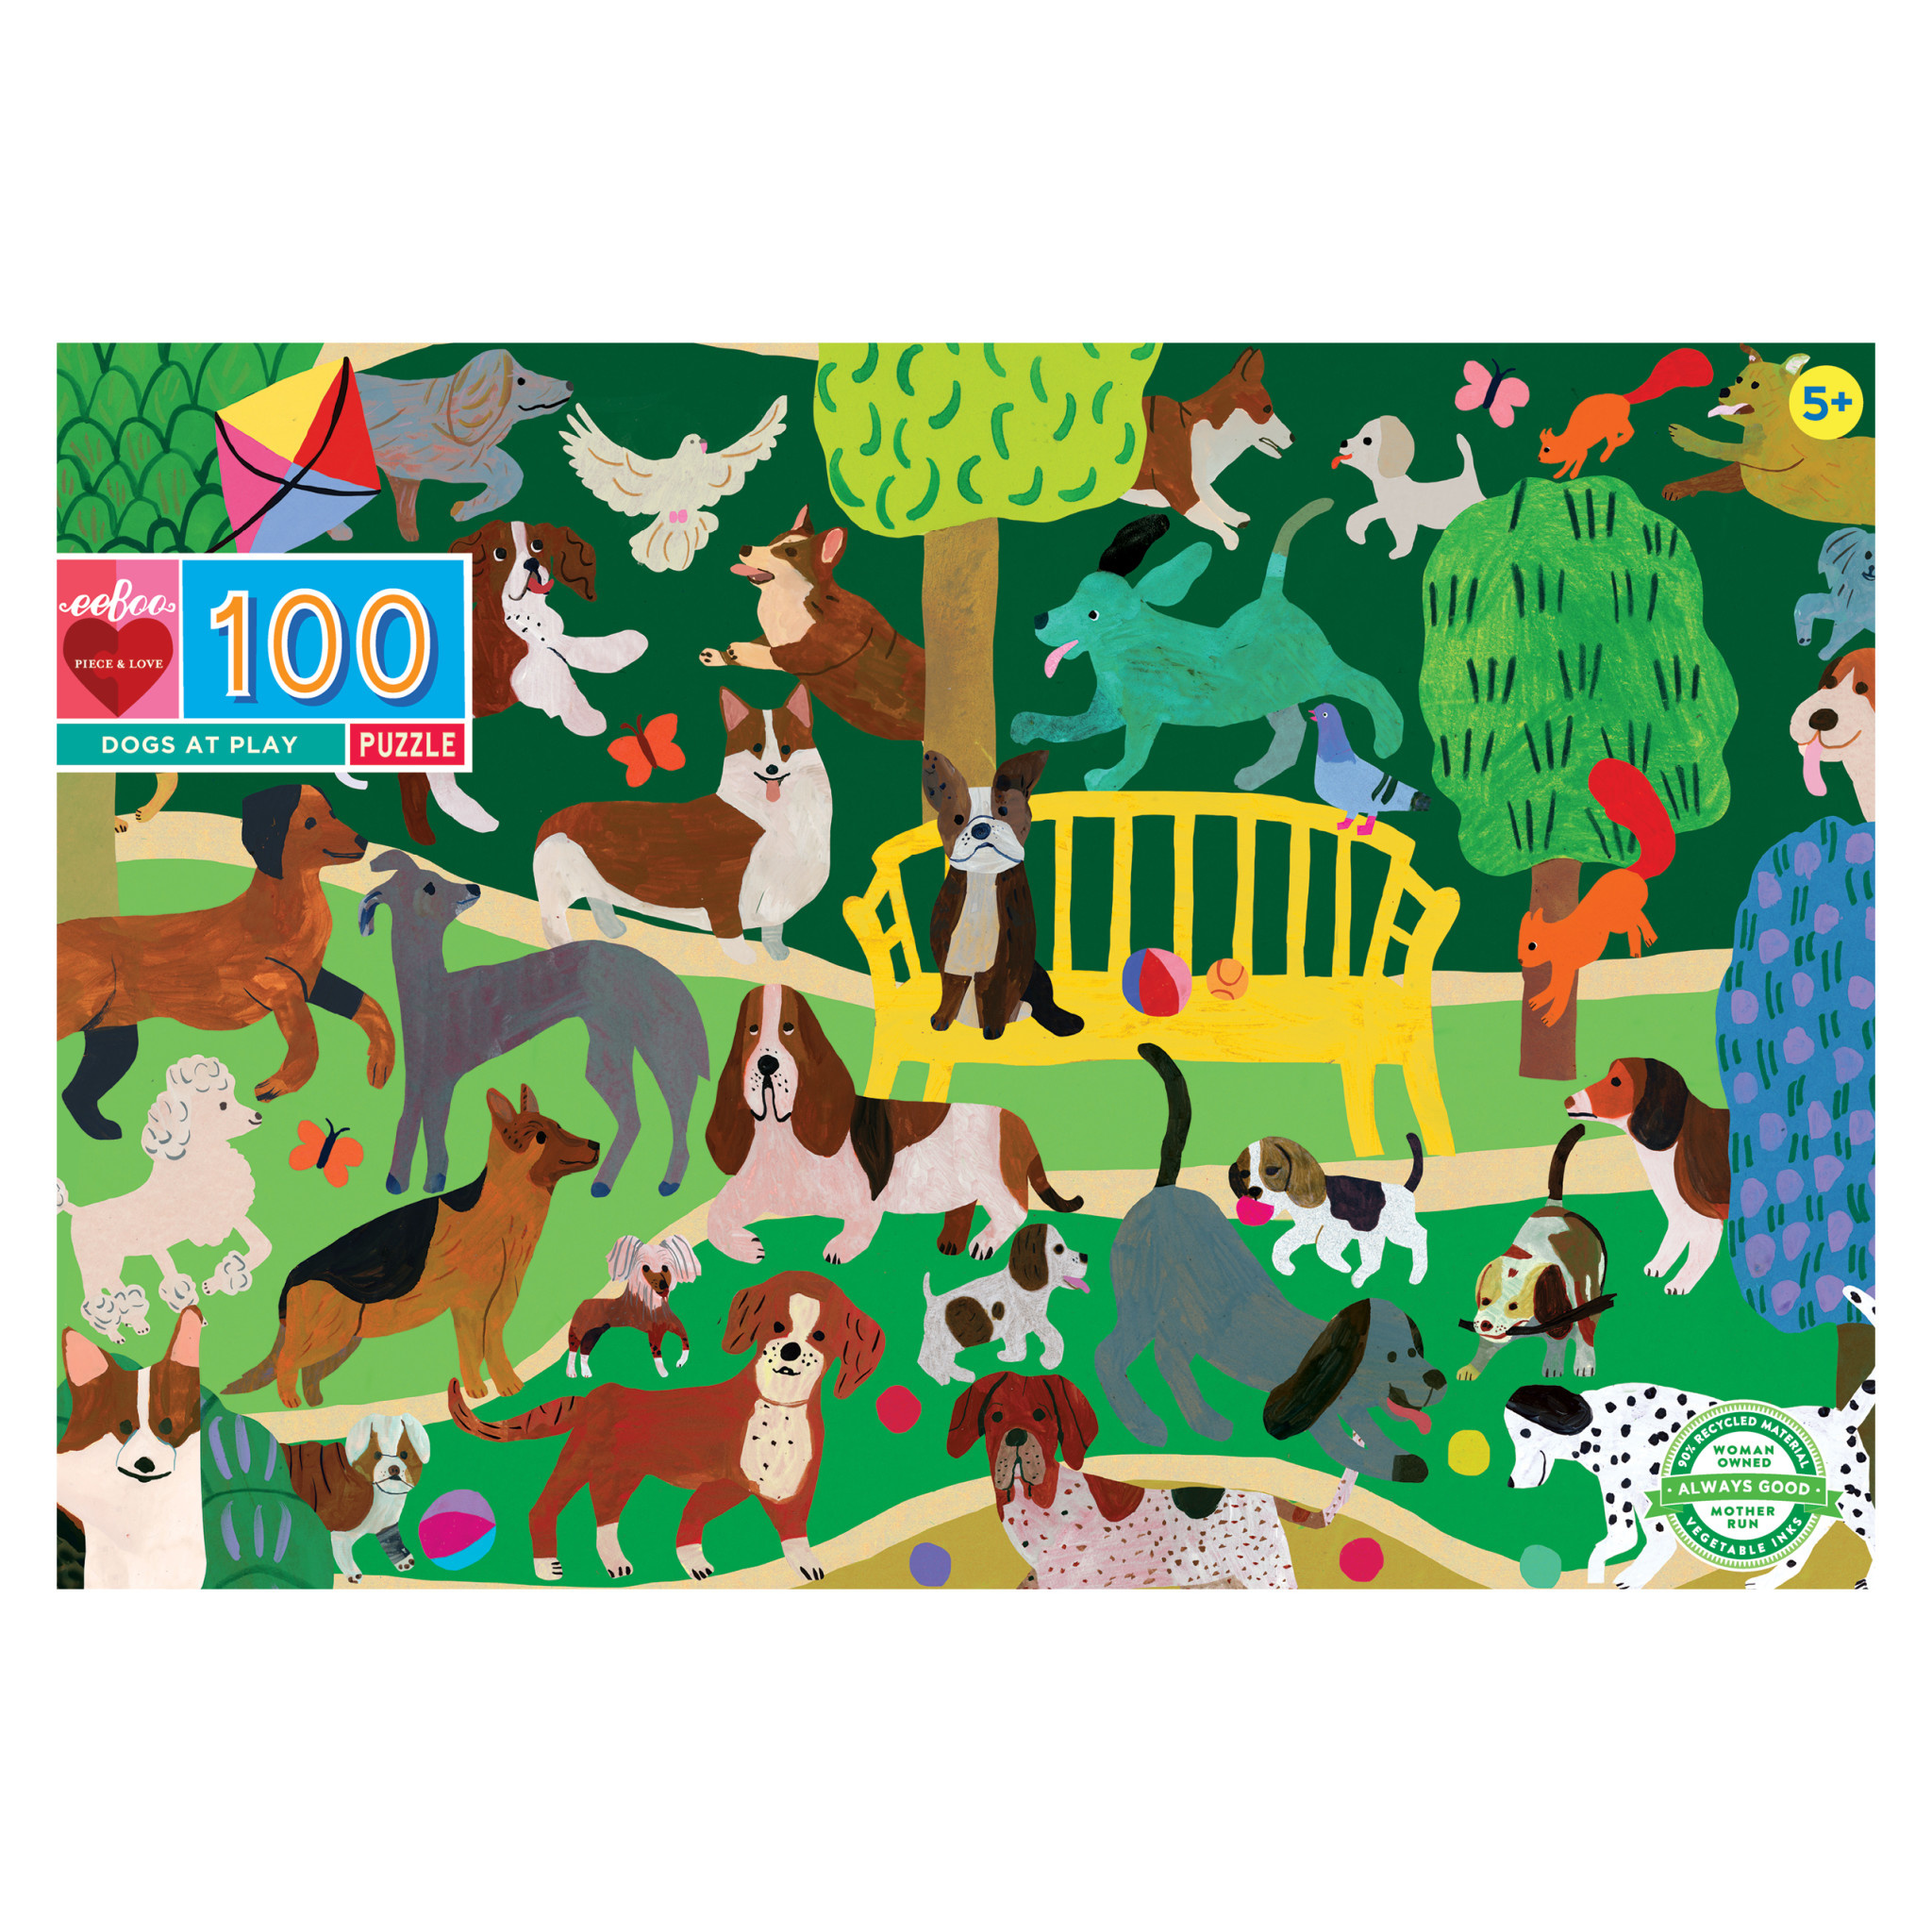 Dogs at Play (100 Piece Puzzle)